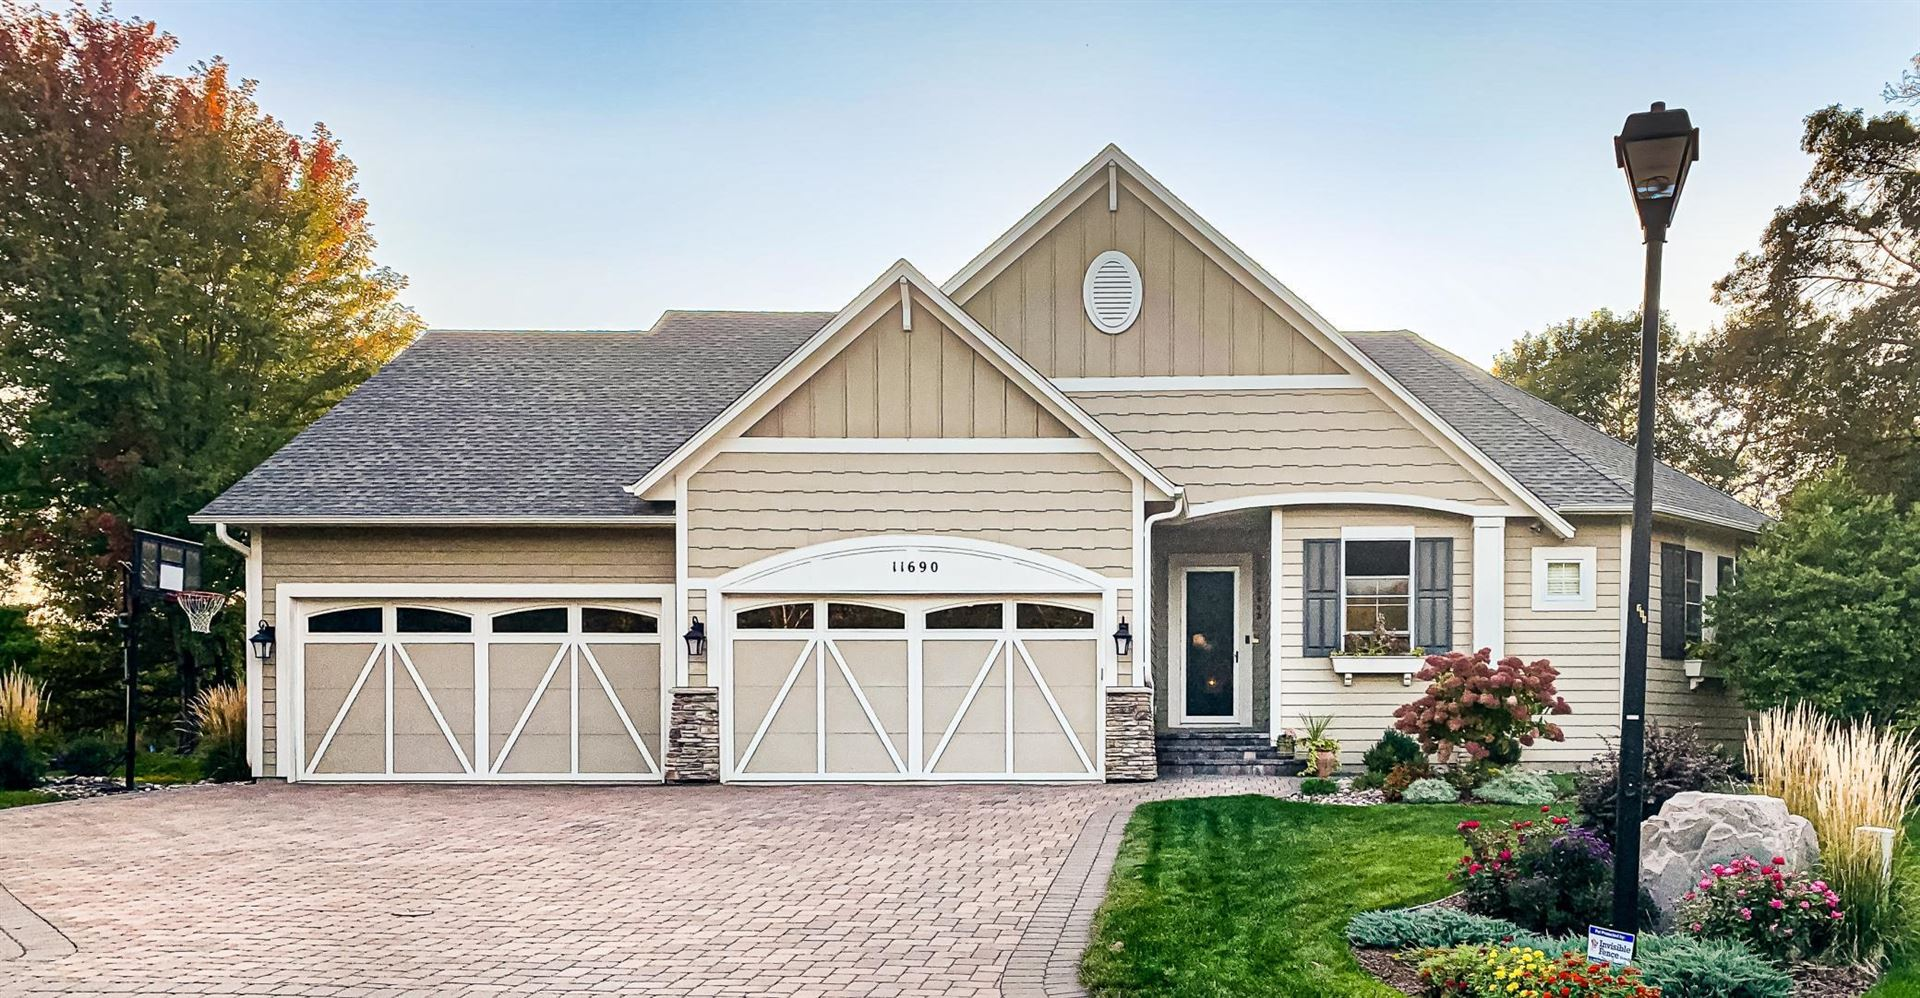 11690 Aileron Court, Inver Grove Heights, MN 55077 - #: 5734713